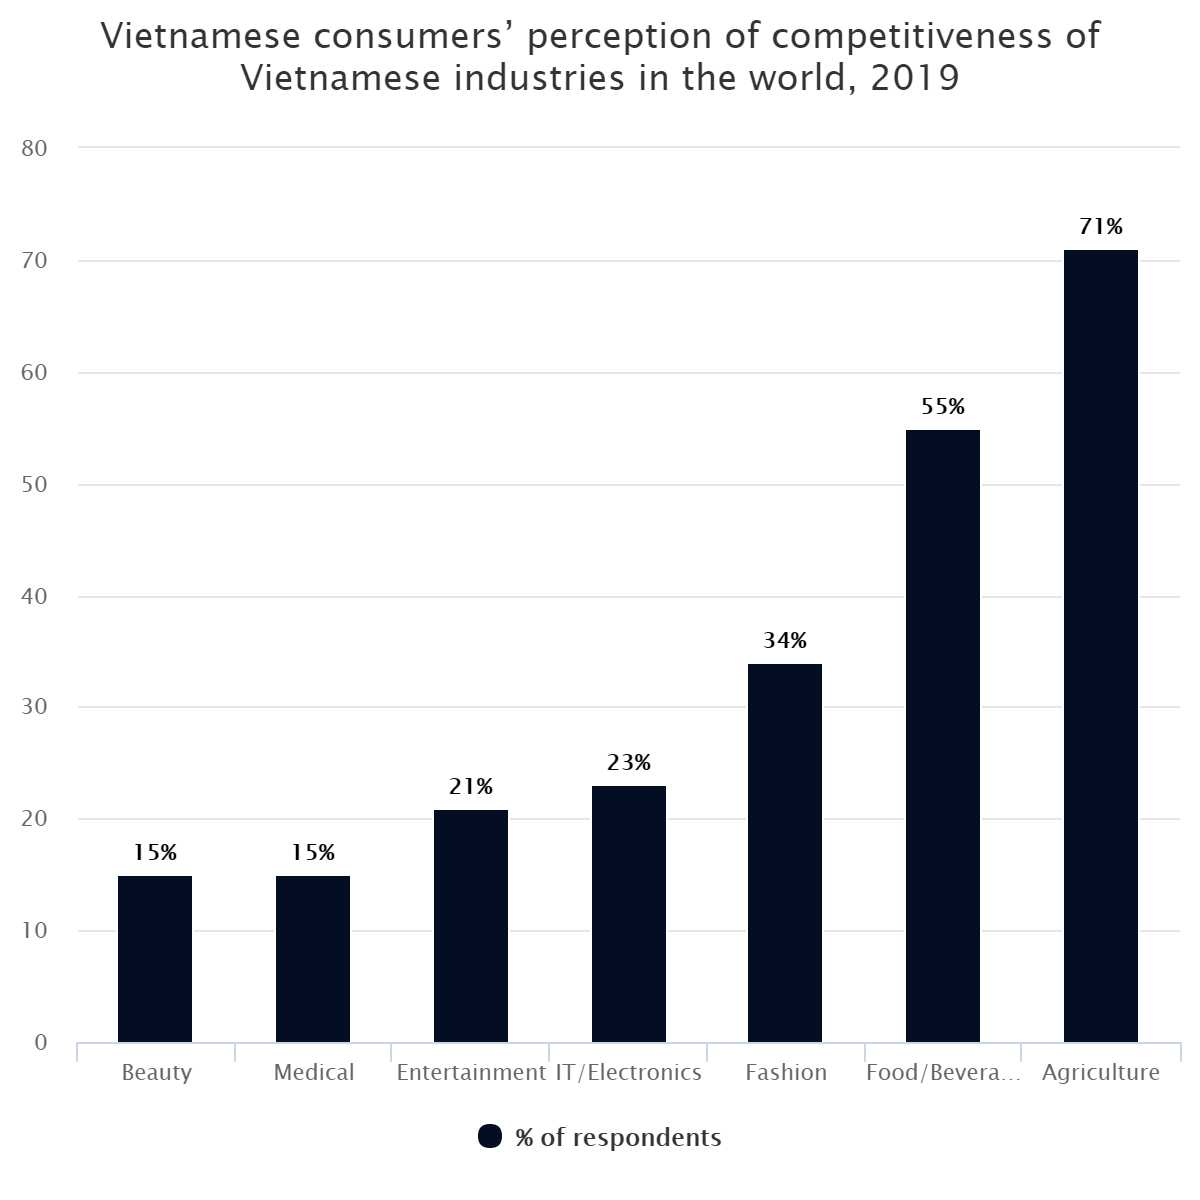 Vietnamese consumers' perception of competitiveness of Vietnamese industries in the world, 2019